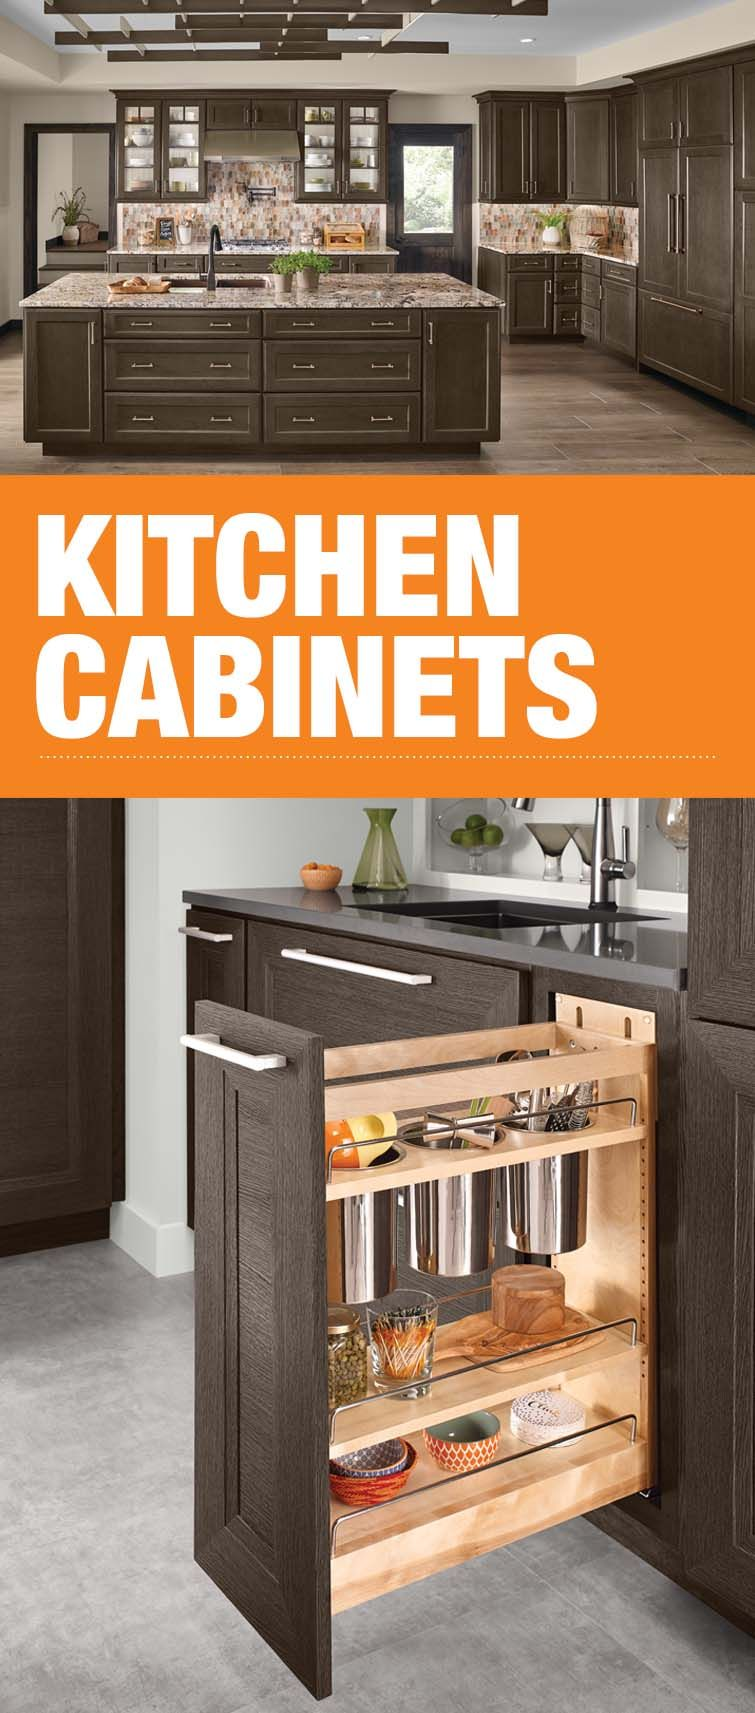 Create your ultimate kitchen by adding beauty storage and